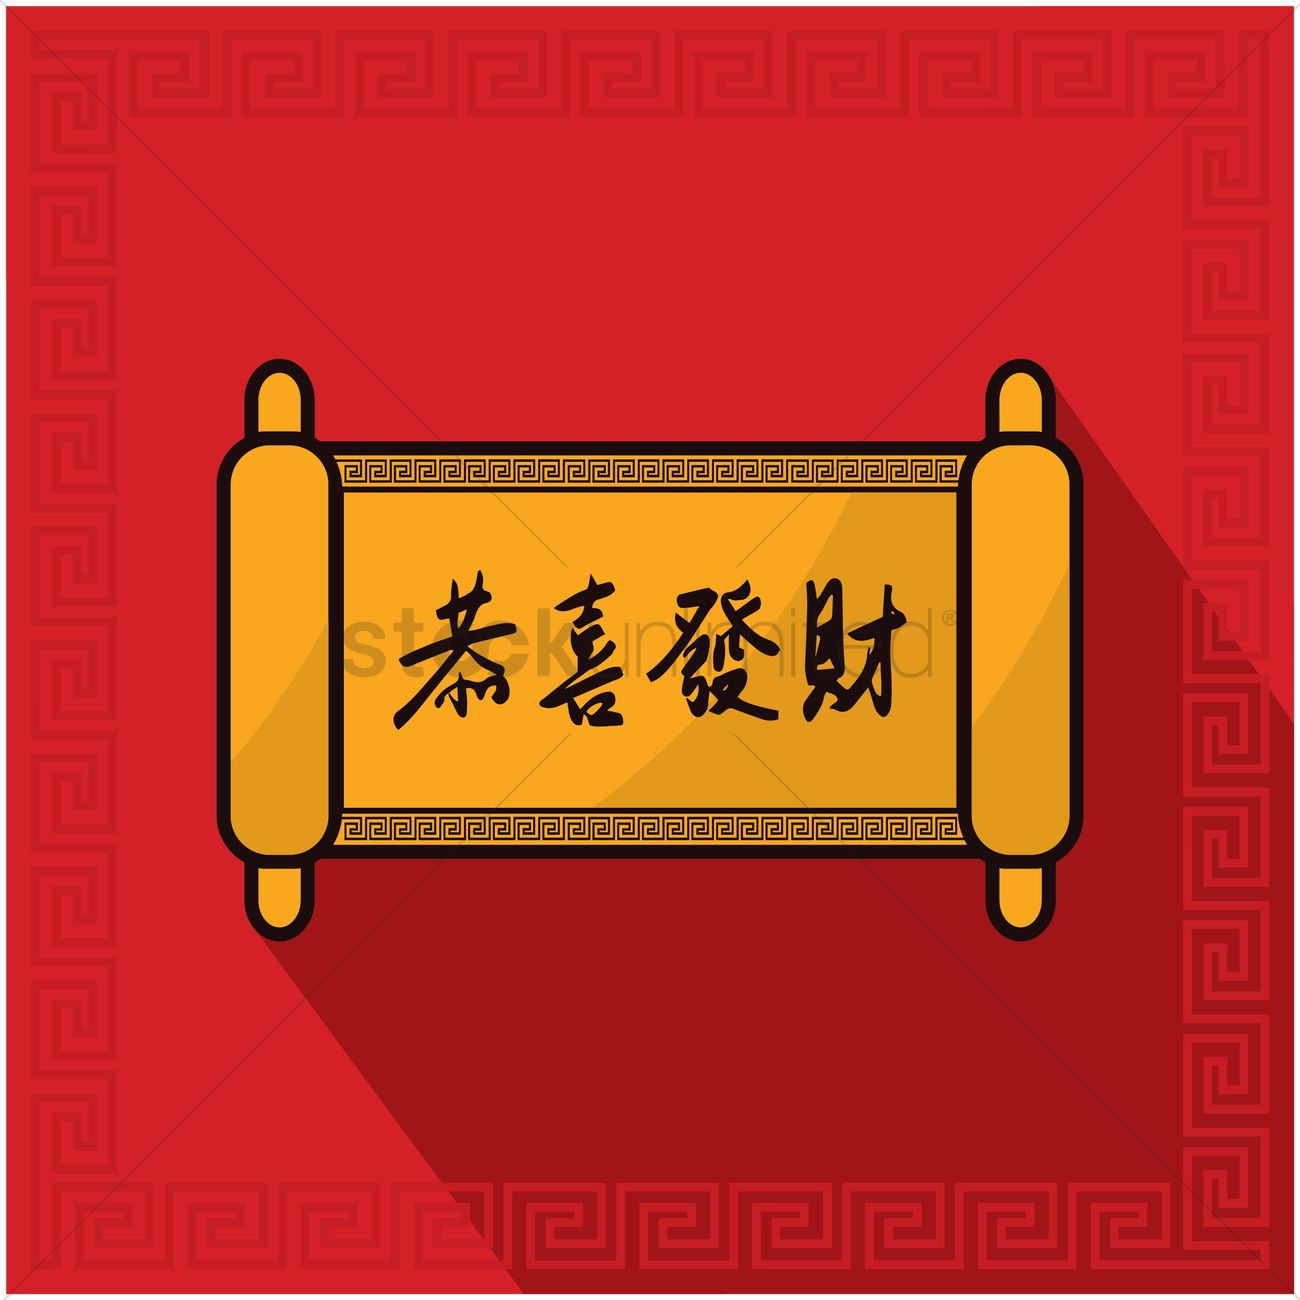 Chinese New Year Greeting In A Scroll Vector Image 1359591